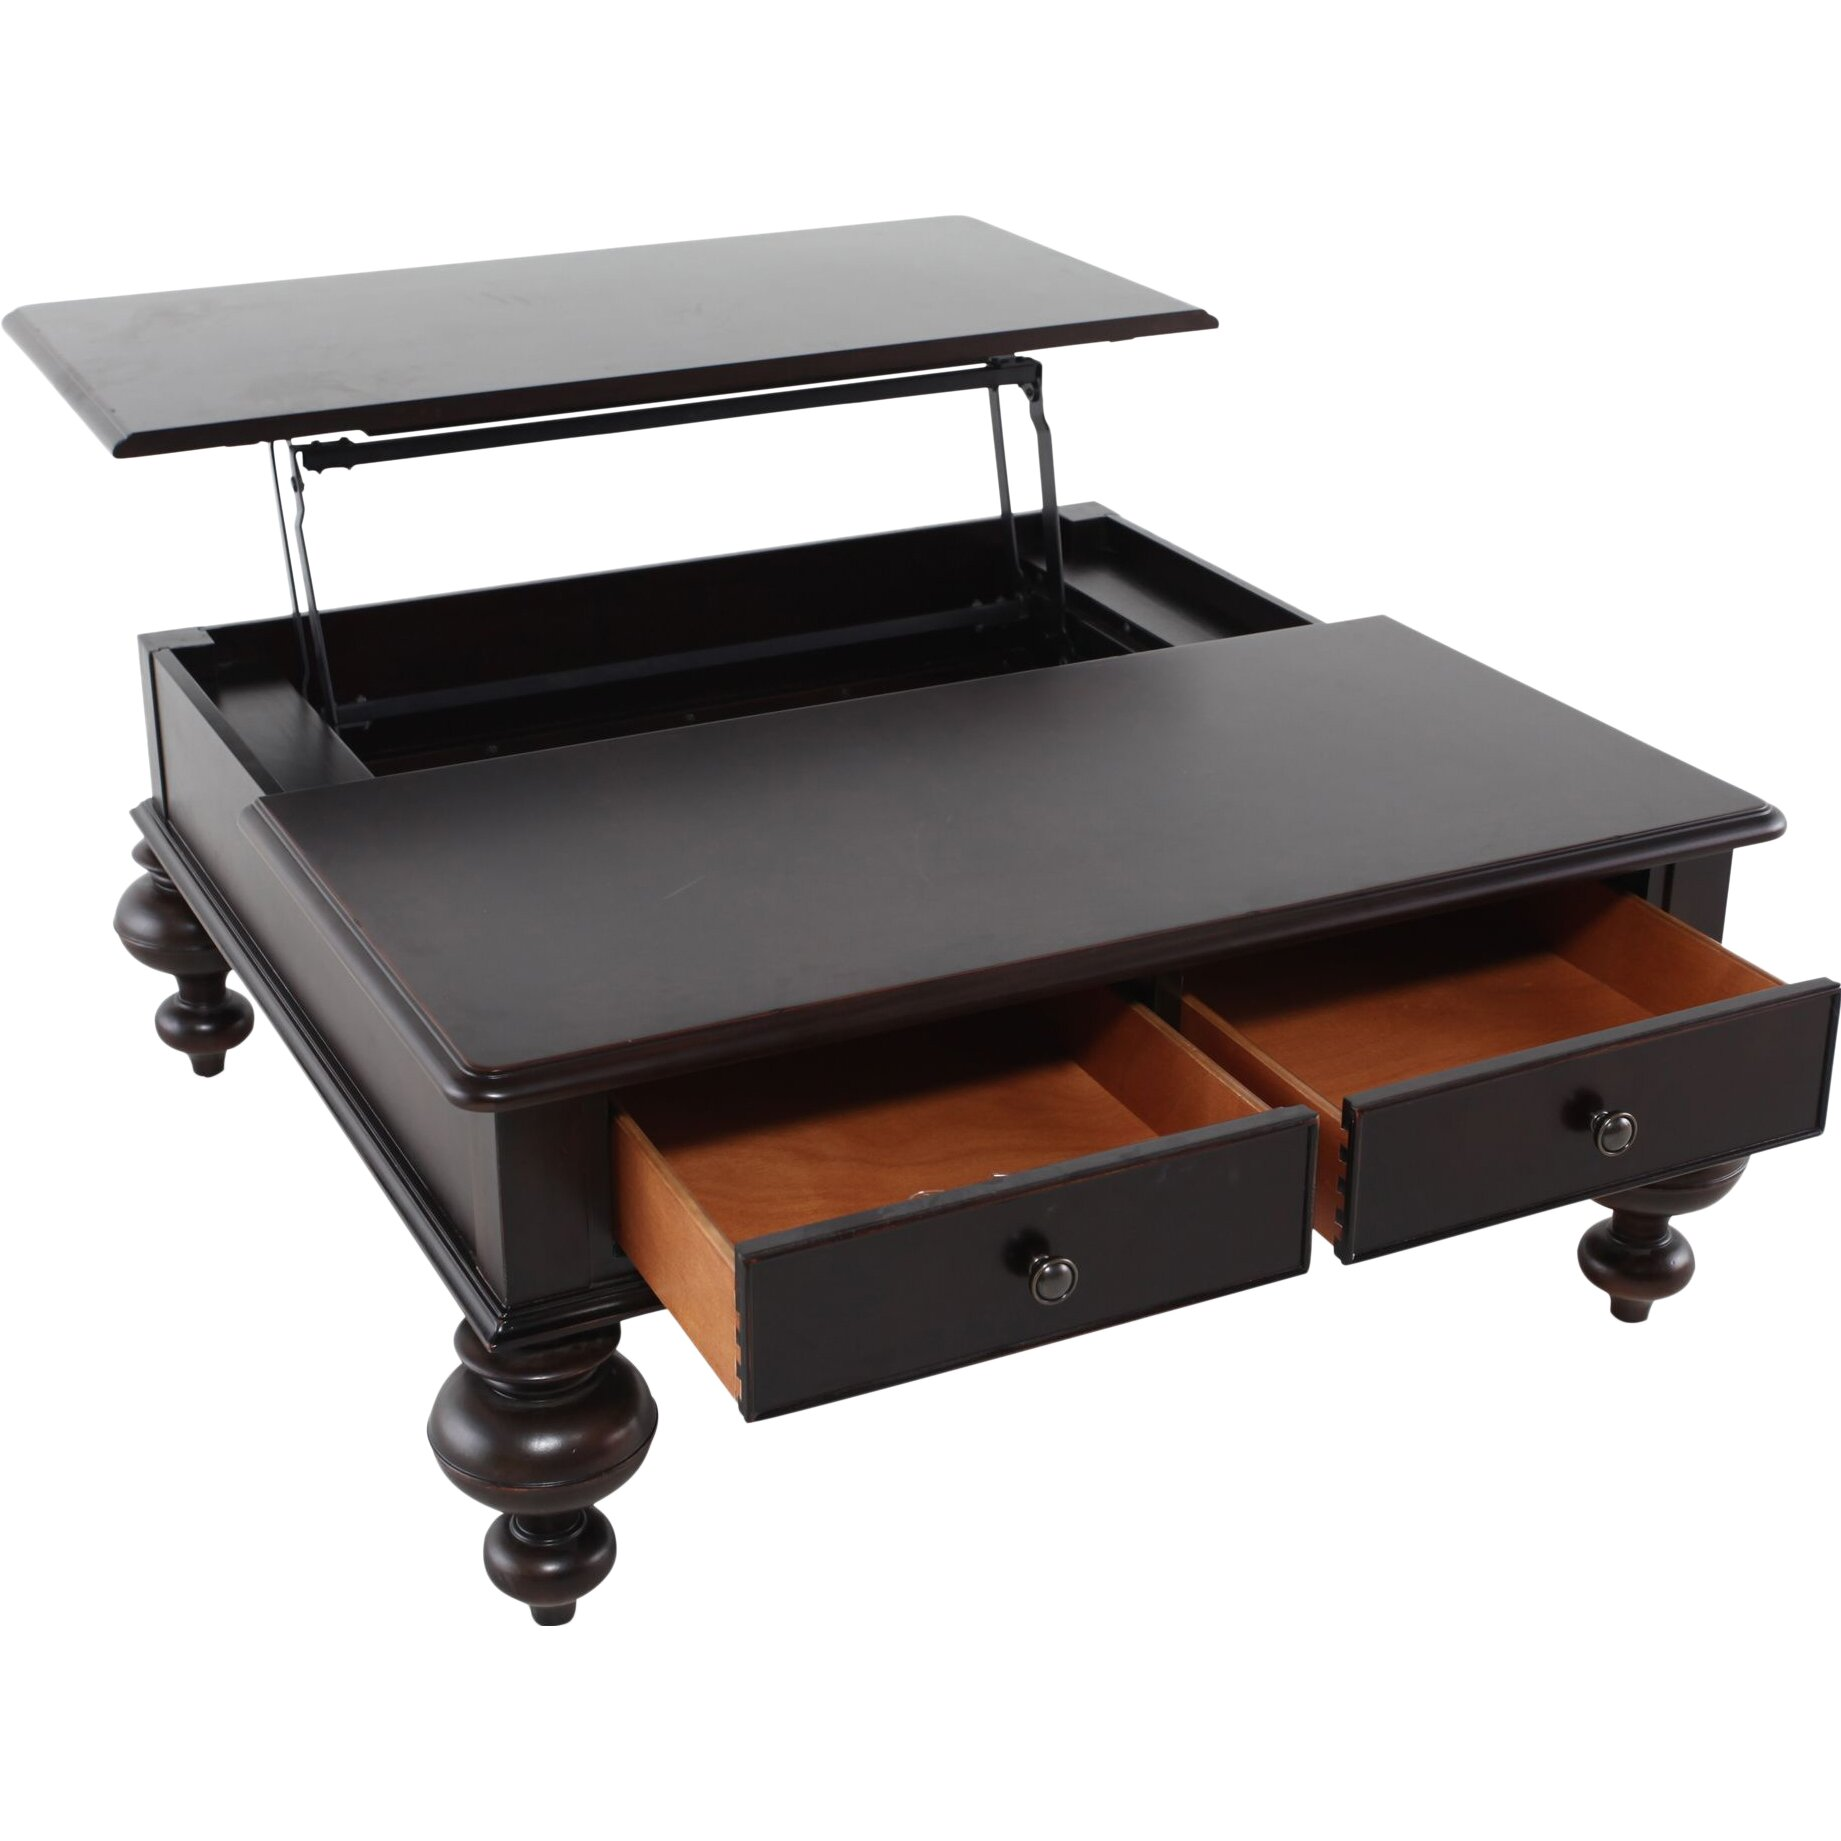 wildon home paula deen home put your feet up coffee table with lift top reviews wayfair. Black Bedroom Furniture Sets. Home Design Ideas